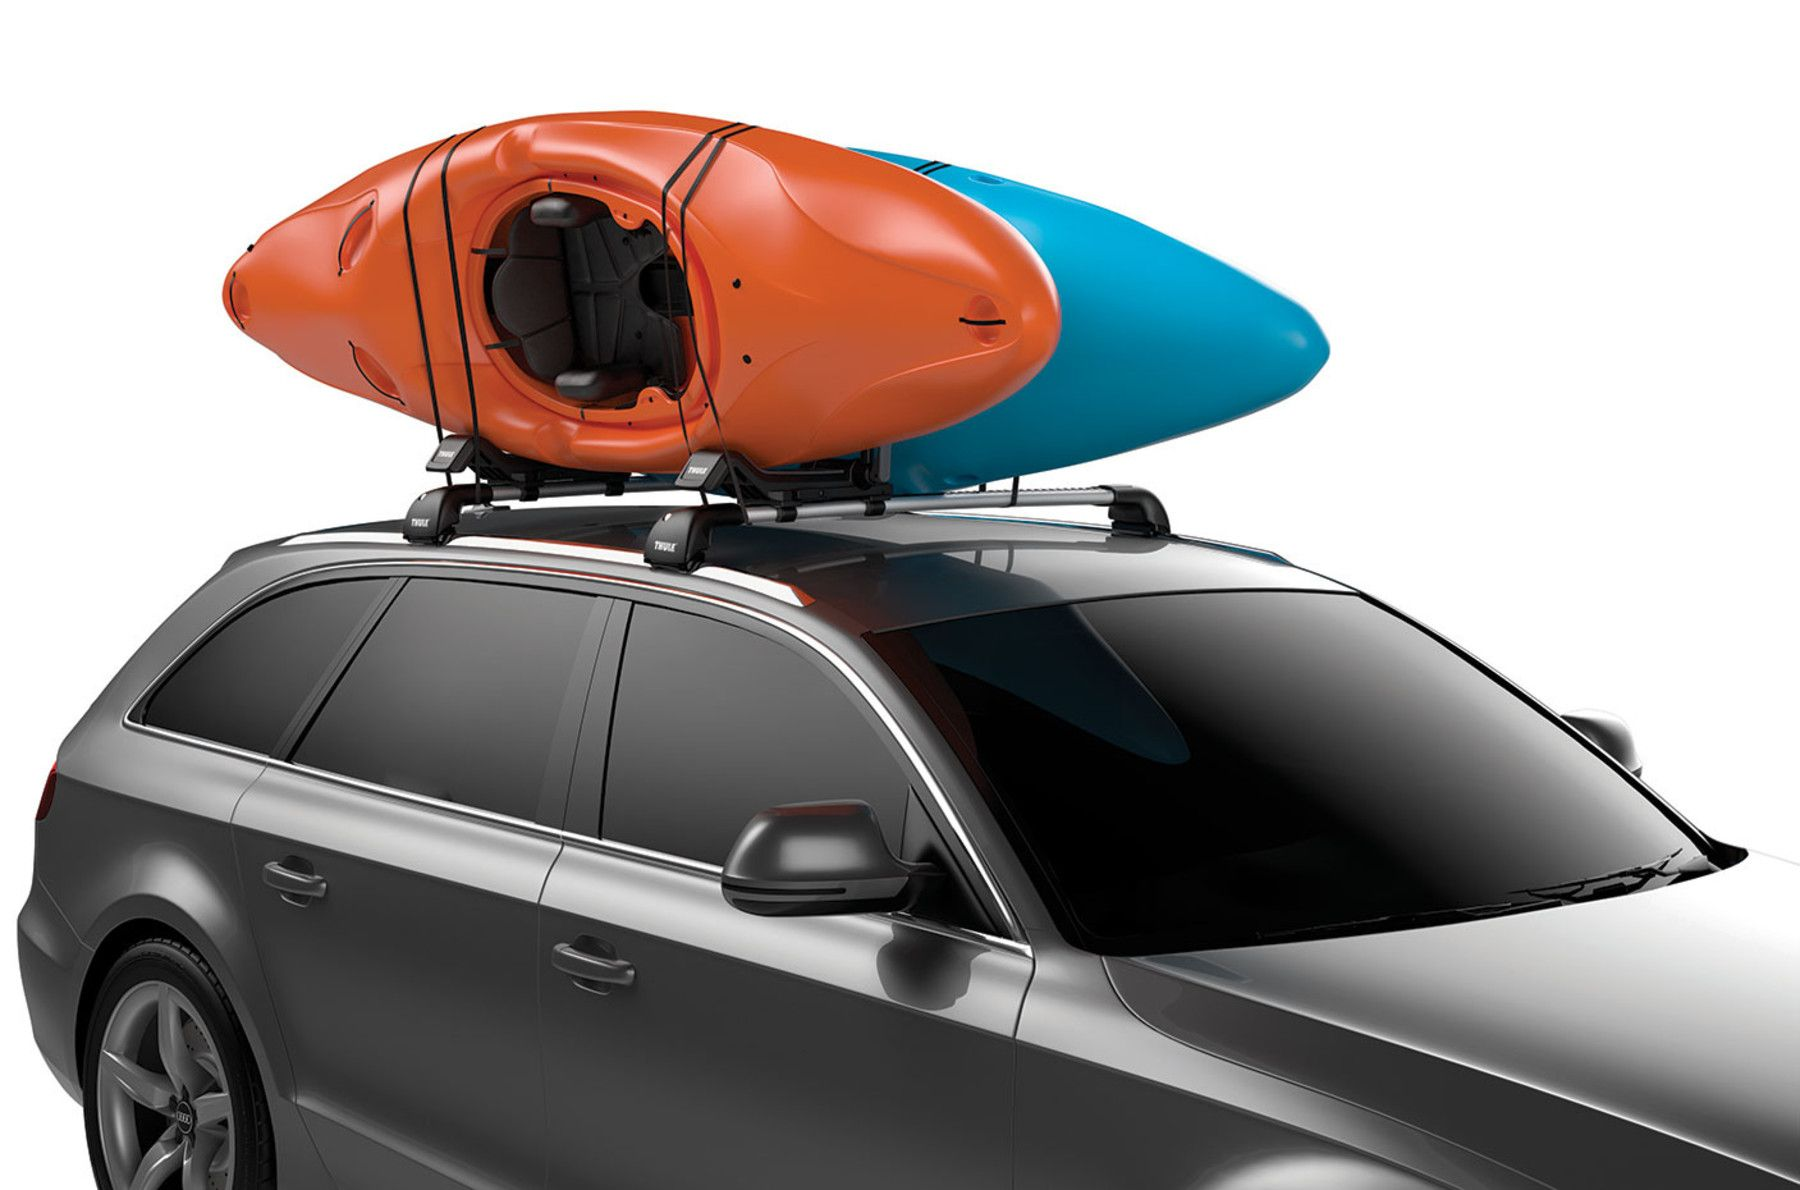 Car Roof Rack For Two Kayaks In 2020 Kayak Roof Rack Thule Roof Rack Car Roof Racks